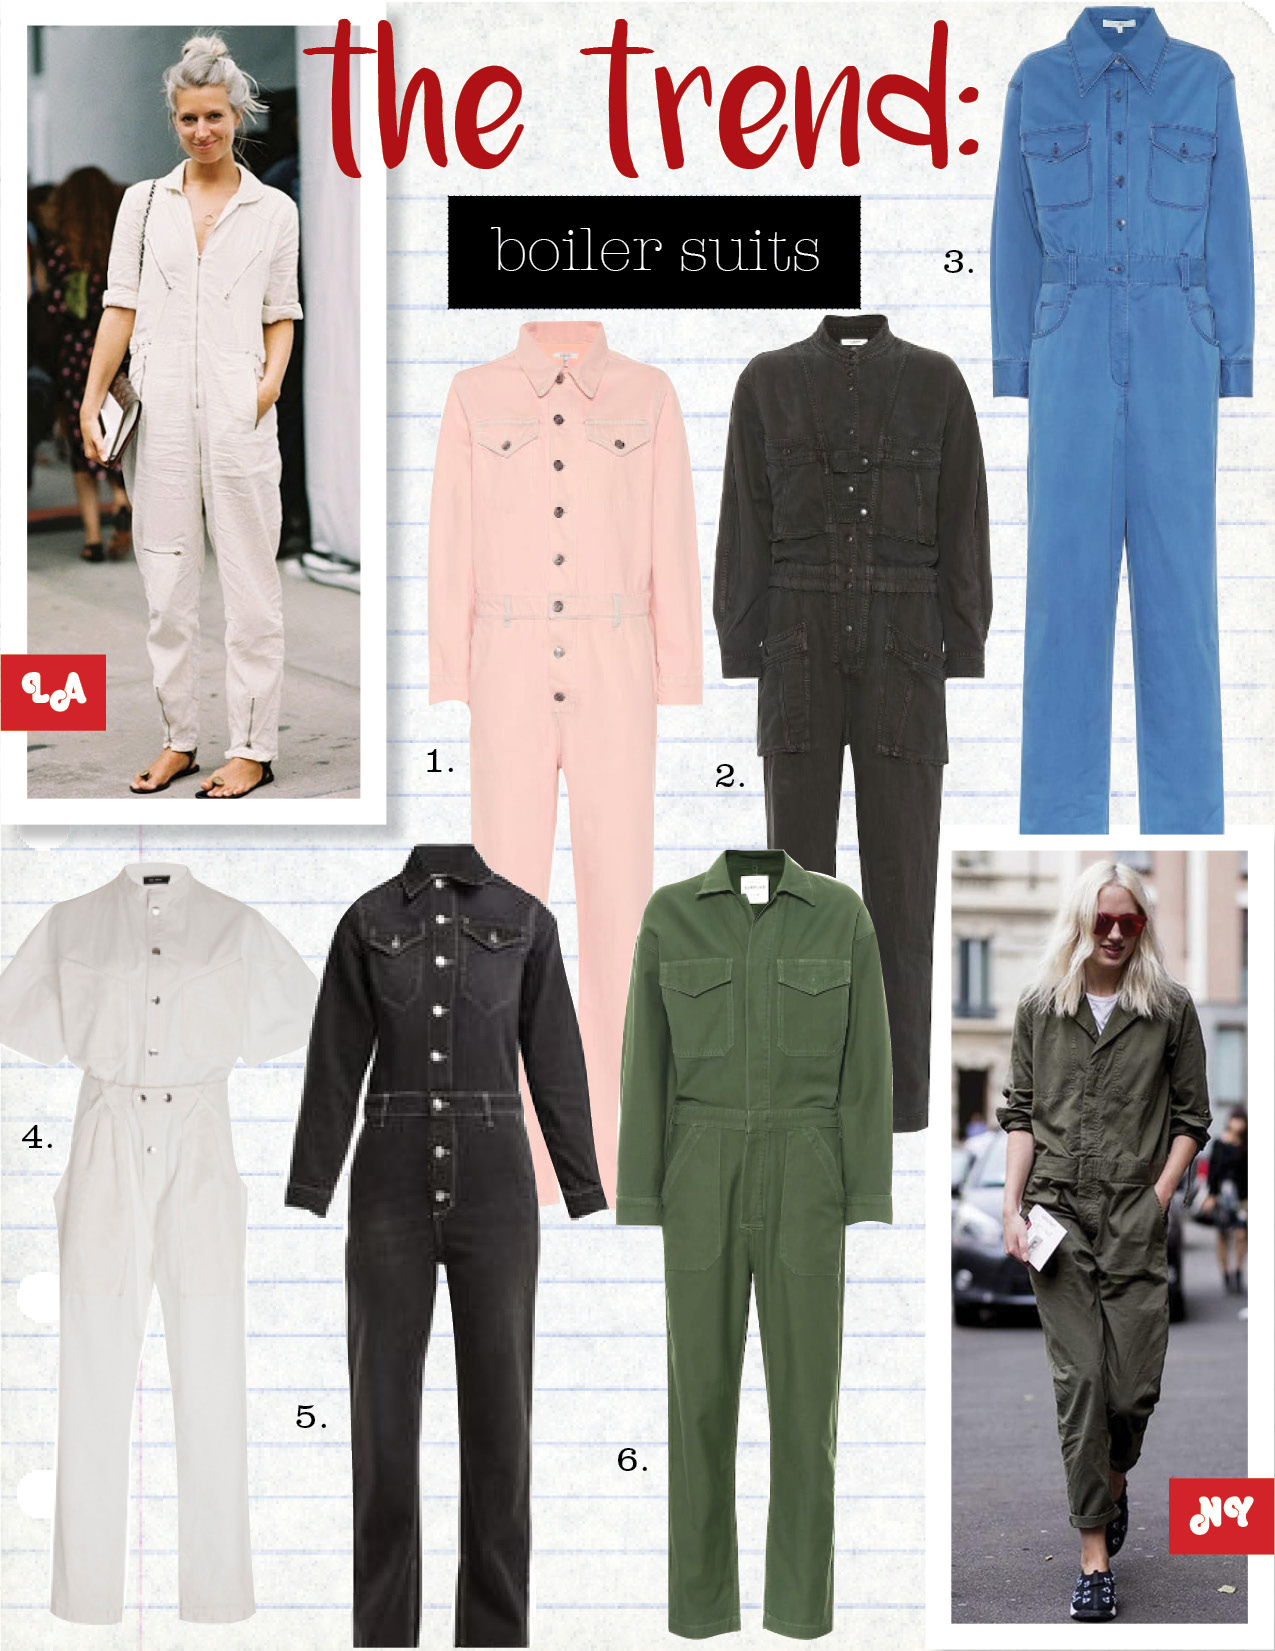 1. ganni denim jumpsuit, $370,  mytheresa.com  2. Isabel Marant etoile lashay jumpsuit, $680,  mytheresa.com  3. tibi stretch cotton twill jumpsuit, $435,  mytheresa.com  4. Isabel Marant tundra denim jumpsuit, $825,  modaoperandi.com  5. ganni rienzi denim jumpsuit, $311,  matchesfashion.com  6. citizens of humanity marta cotton jumpsuit, $358,  mytheresa.com